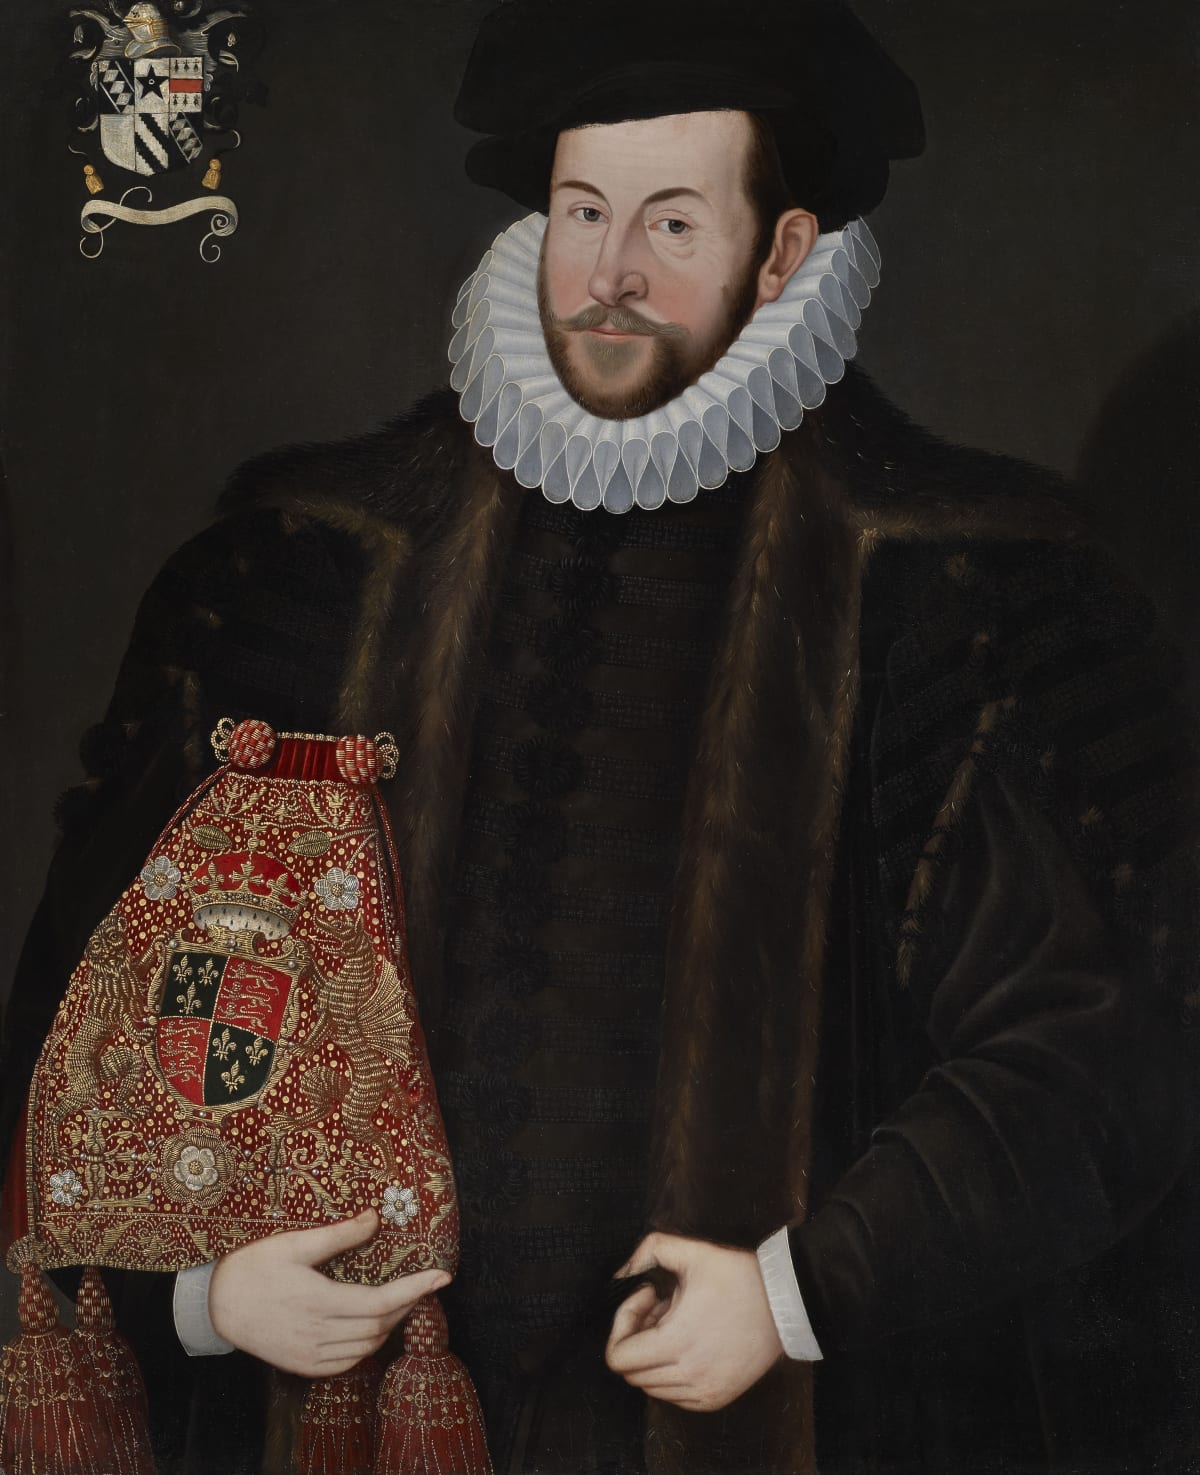 Unknown Follower of Custodis (fl. 1592 – 1612) Sir John Puckering of Kew, Surrey and Weston (c. 1544 – 1596), Speaker of the House of Commons and Lord Keeper of the Privy Seal, circa 1592 Oil on panel 35 x 28 ¾ in. (89 x 73 cm.)